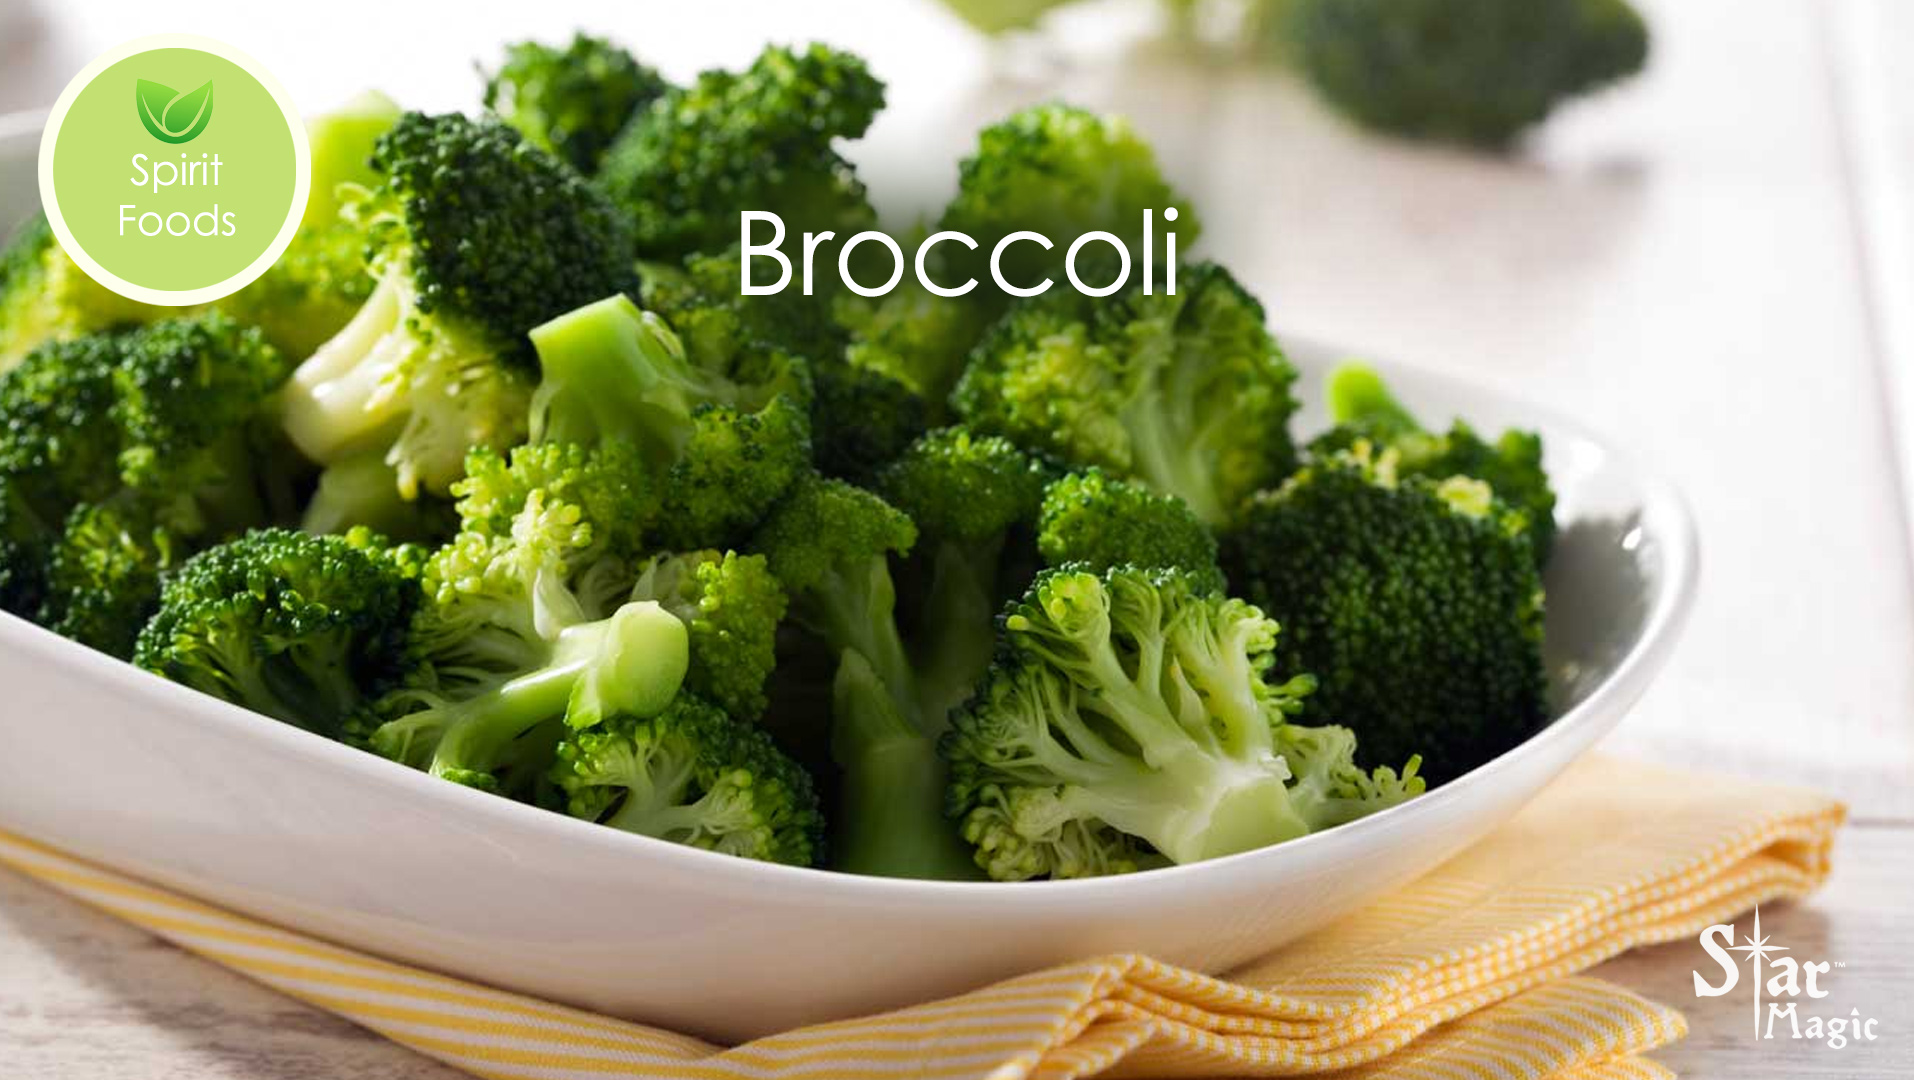 Spirit Food – Broccoli